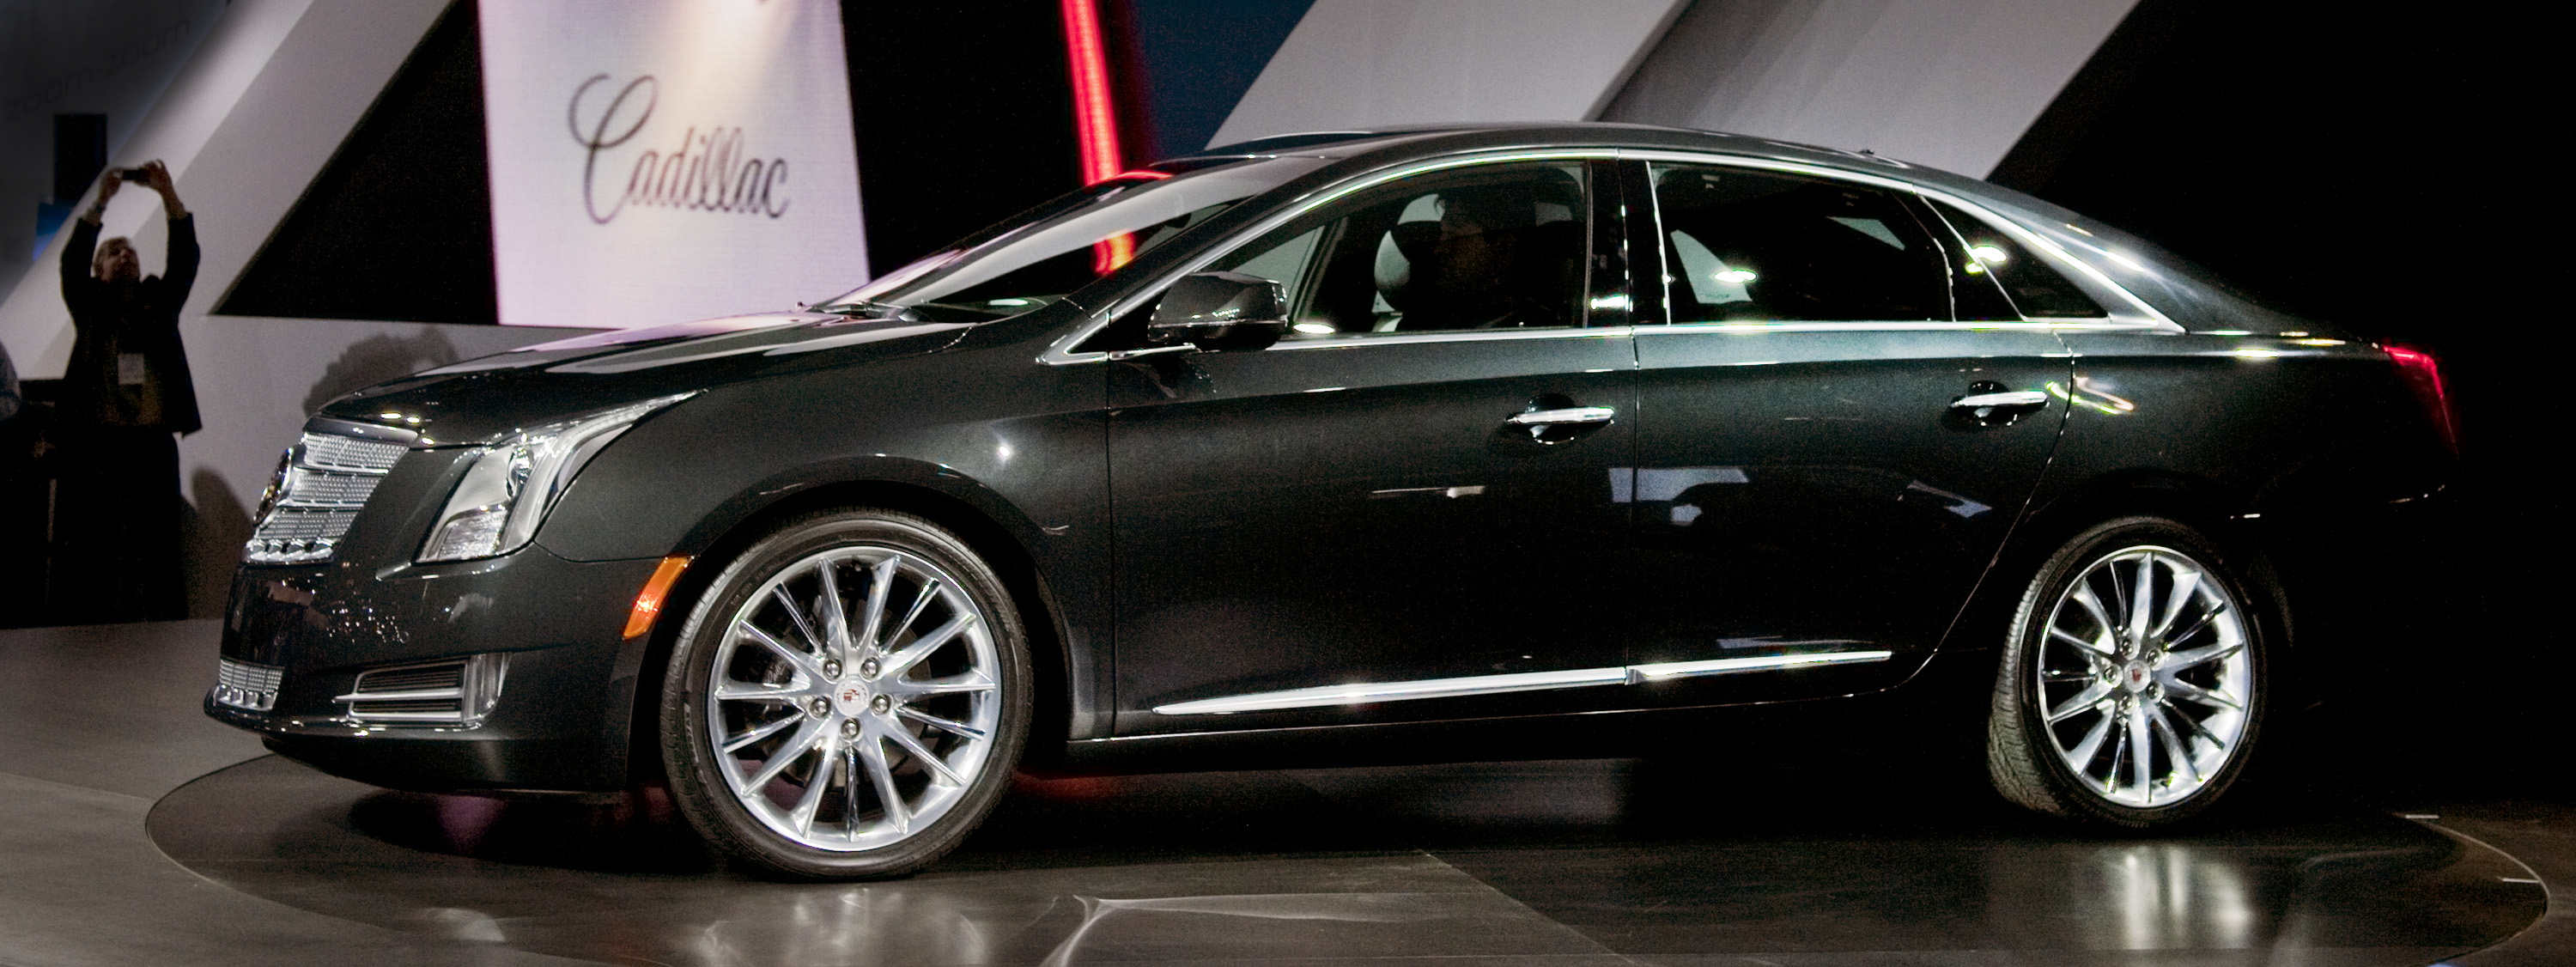 Cadillac XTS Source: (C) GM Corp.